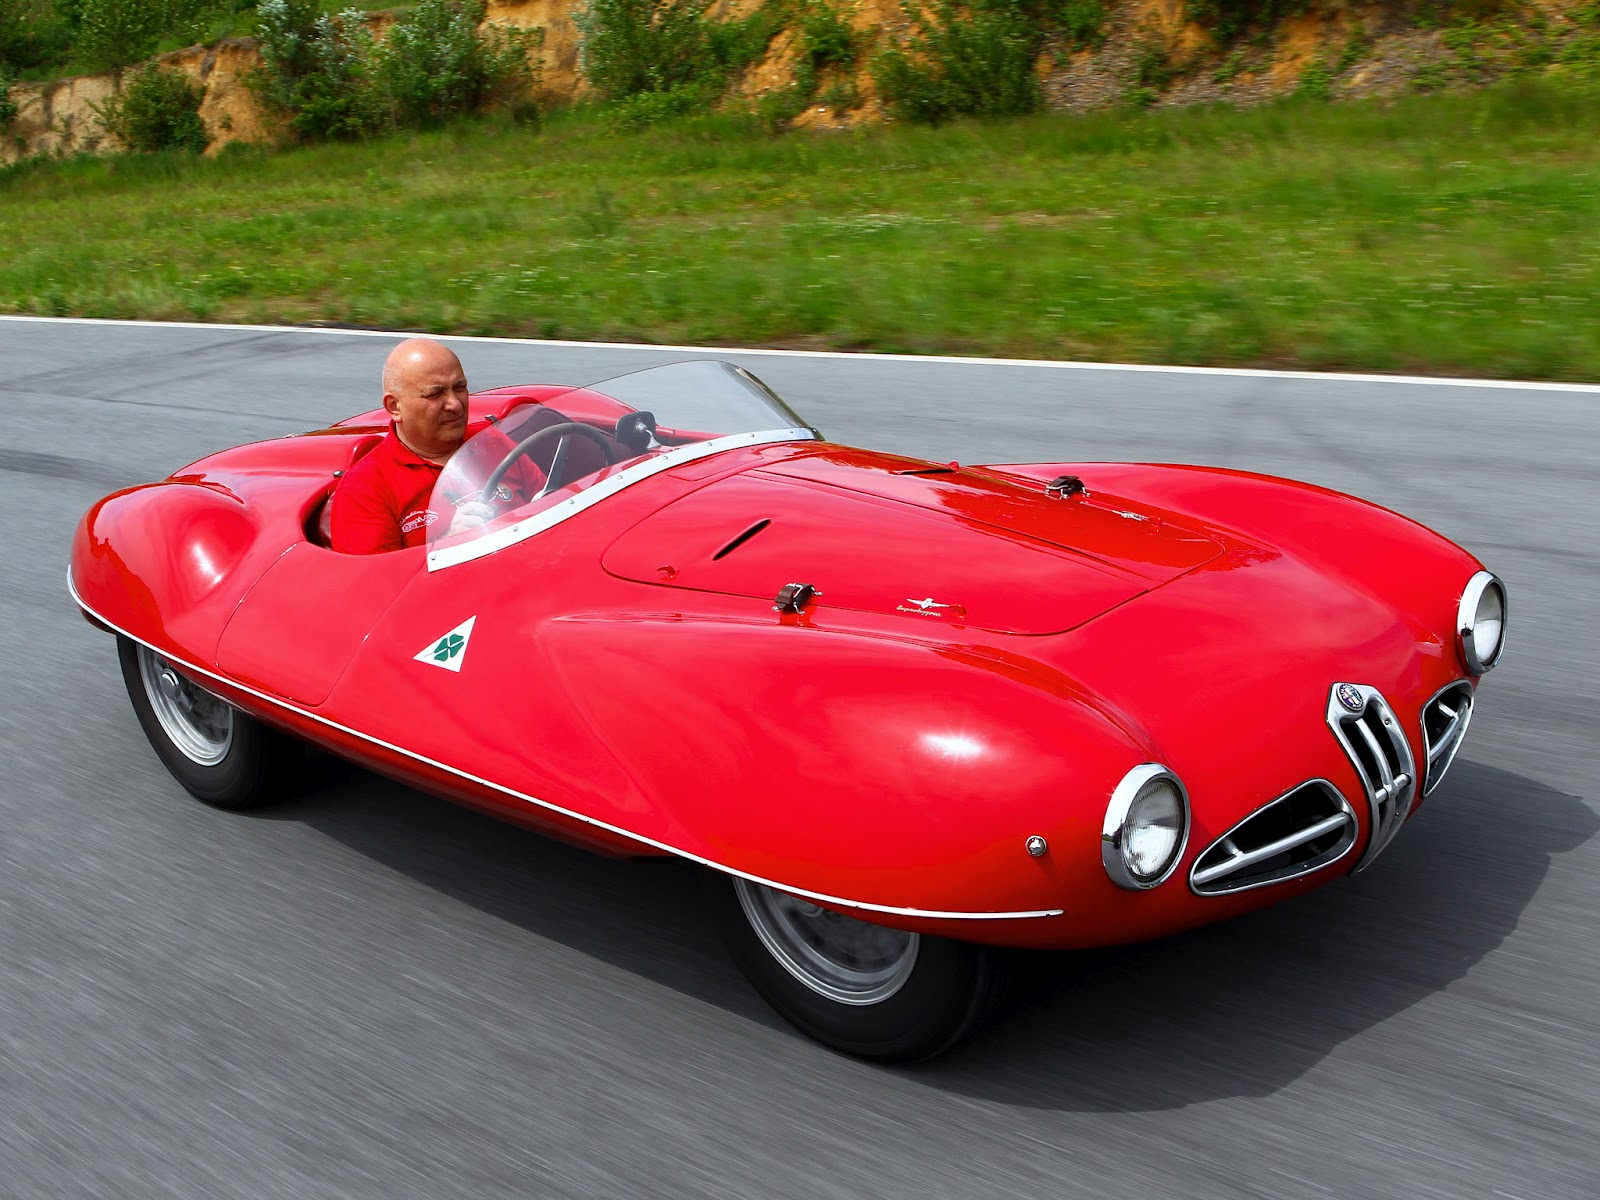 1952 Alfa Romeo C 52 Disco Volante 2000 Spider photo - 2